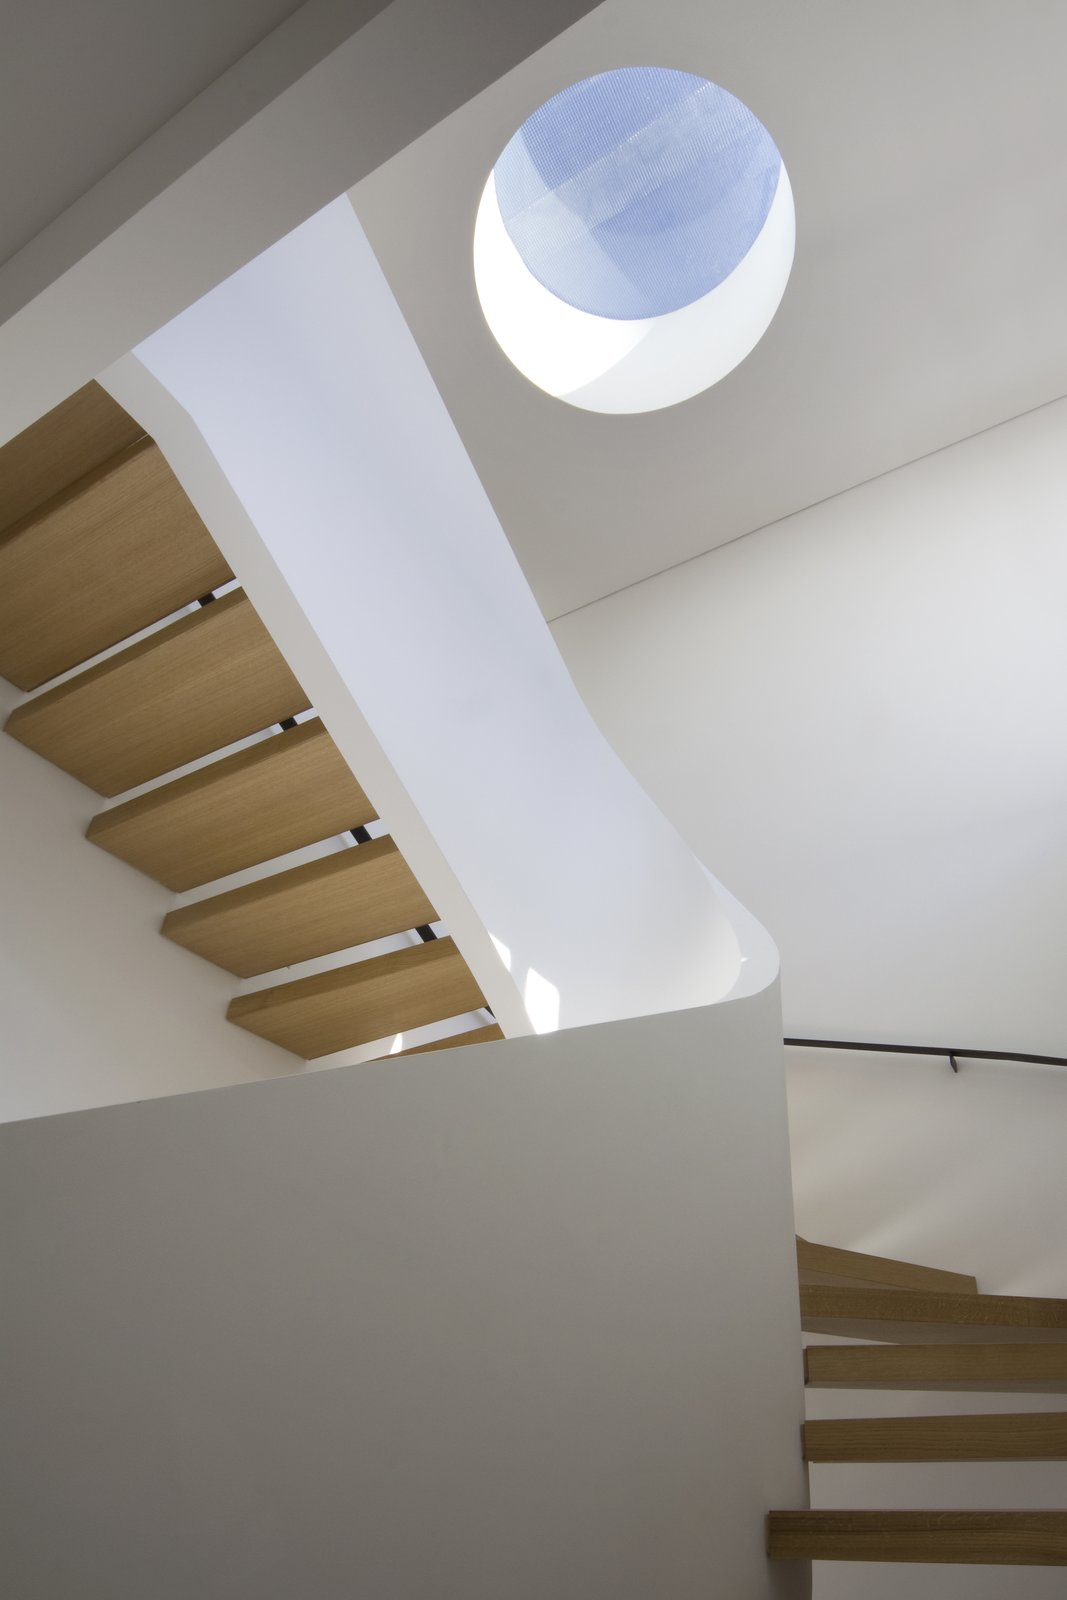 The architects added a small circular skylight to serve as a vertical focal point in the center of the fifth floor. The quarter-sawn white oak risers produce a beautiful rippled grain highlighted by the abundant natural light. Tagged: Skylight Window Type, Staircase, and Wood Tread.  White Oak by Maura Lucking